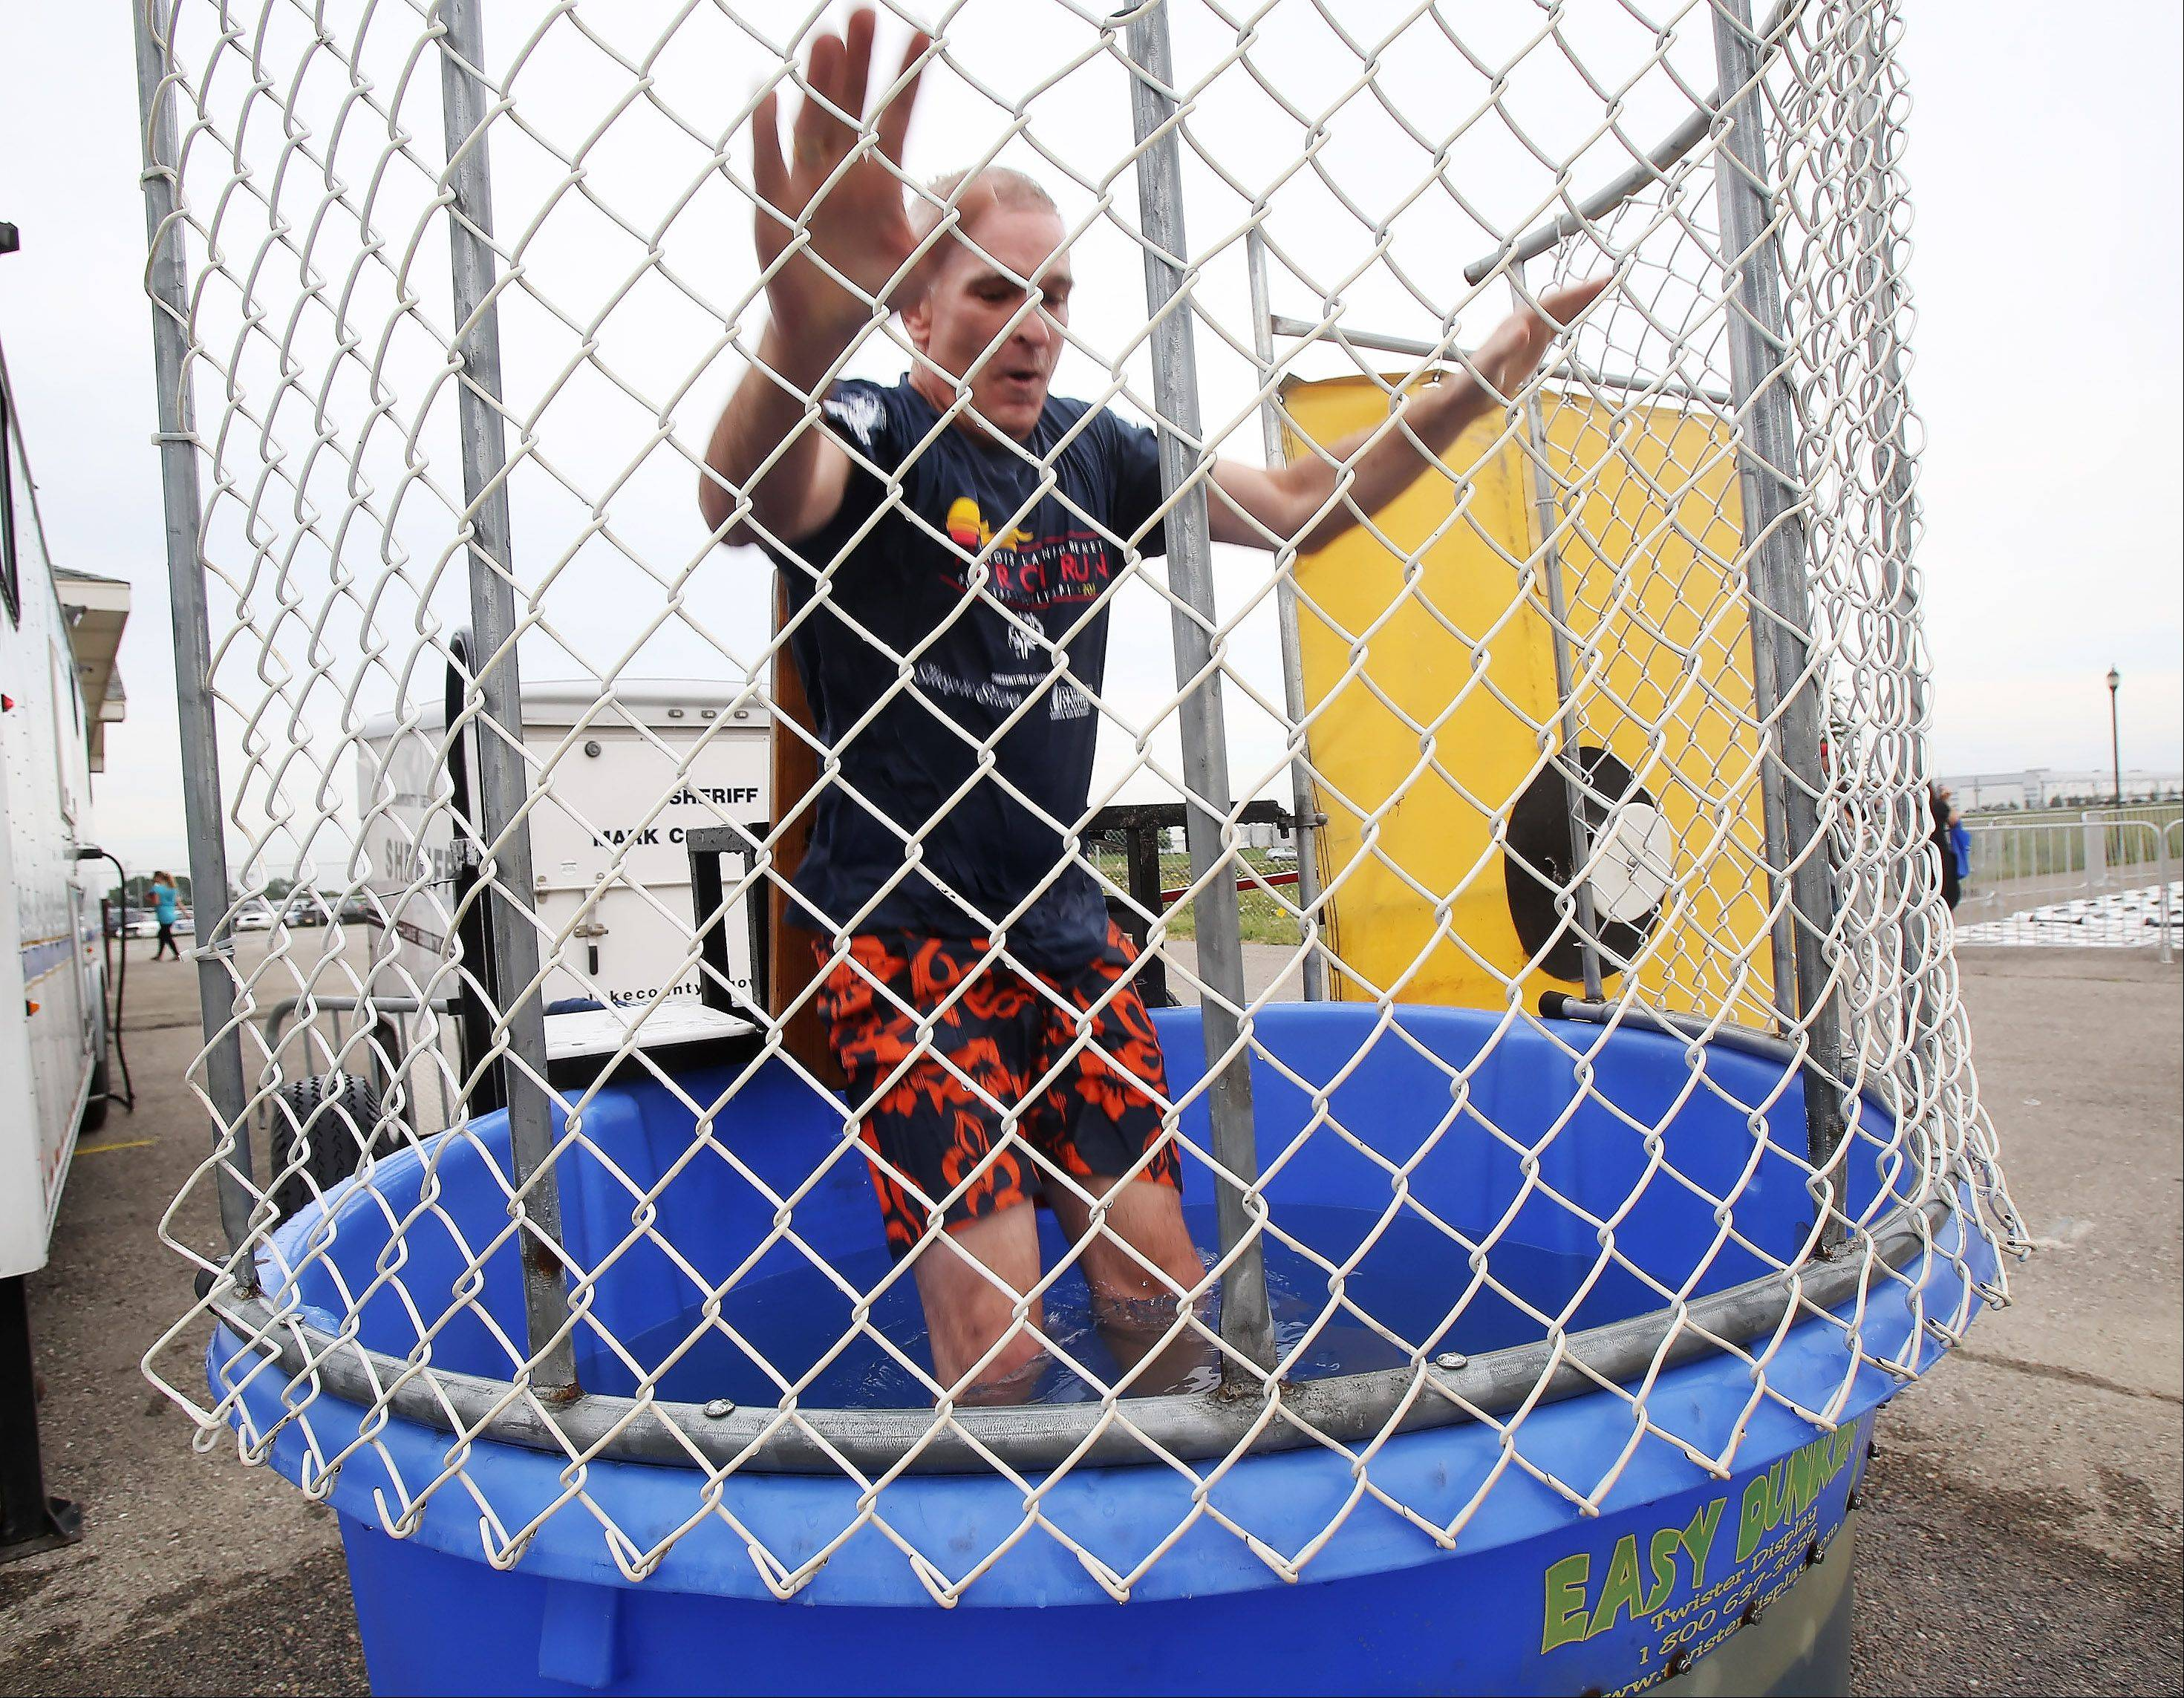 Lake County Sheriff Mark Curran falls in the water after the target was hit at the dunk tank sponsored by the Lake County Sheriff's Department Thursday at the Lake County Fairgrounds in Grayslake. The money raised will be donated to Special Olympics Illinois.